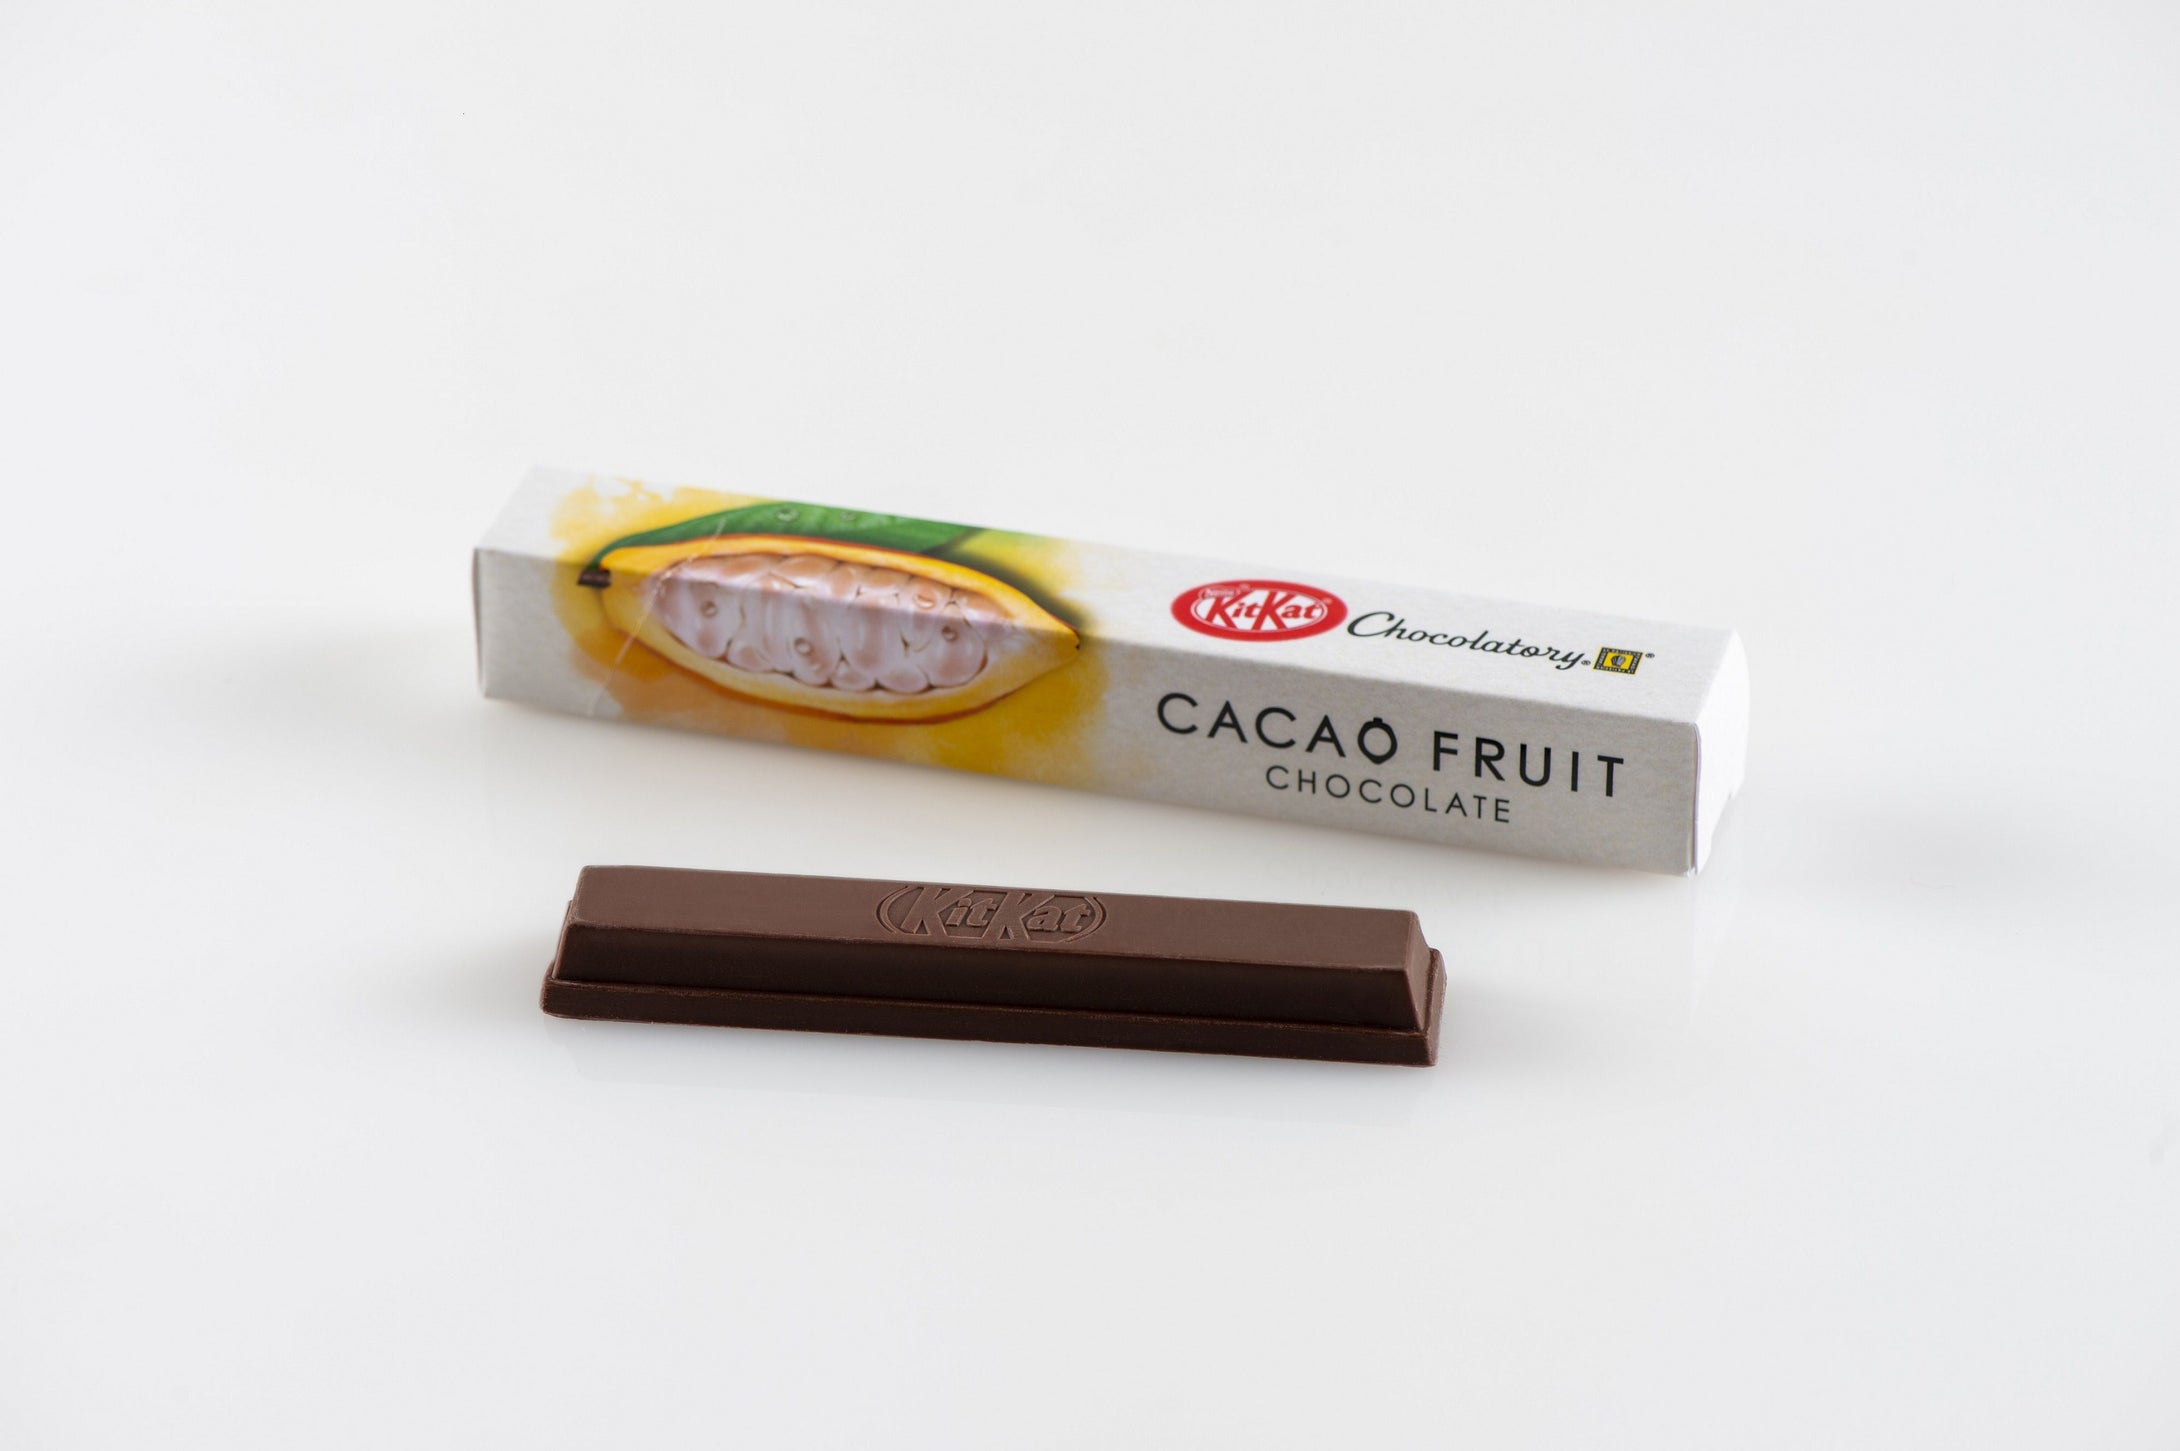 NESTLE KITKAT Chocolatory - Cacao Fruit Chocolate